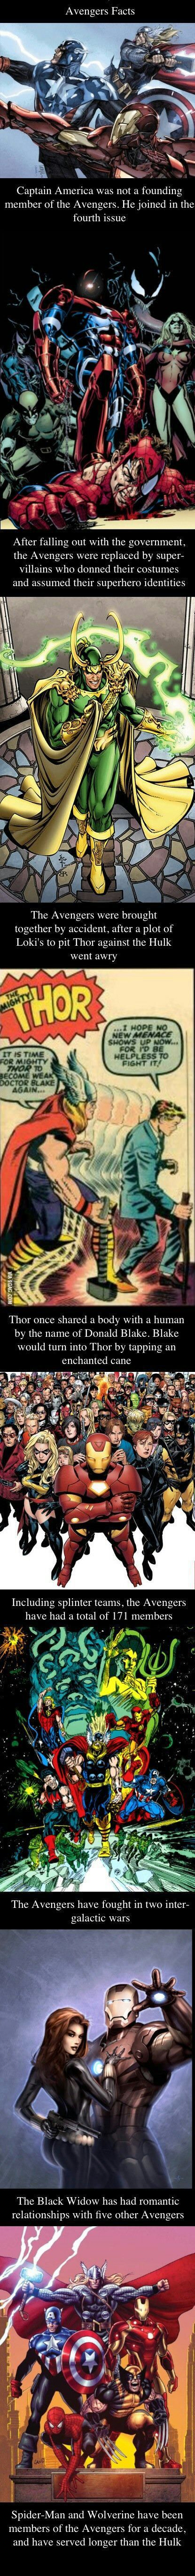 Avengers Facts.. knew most of these already